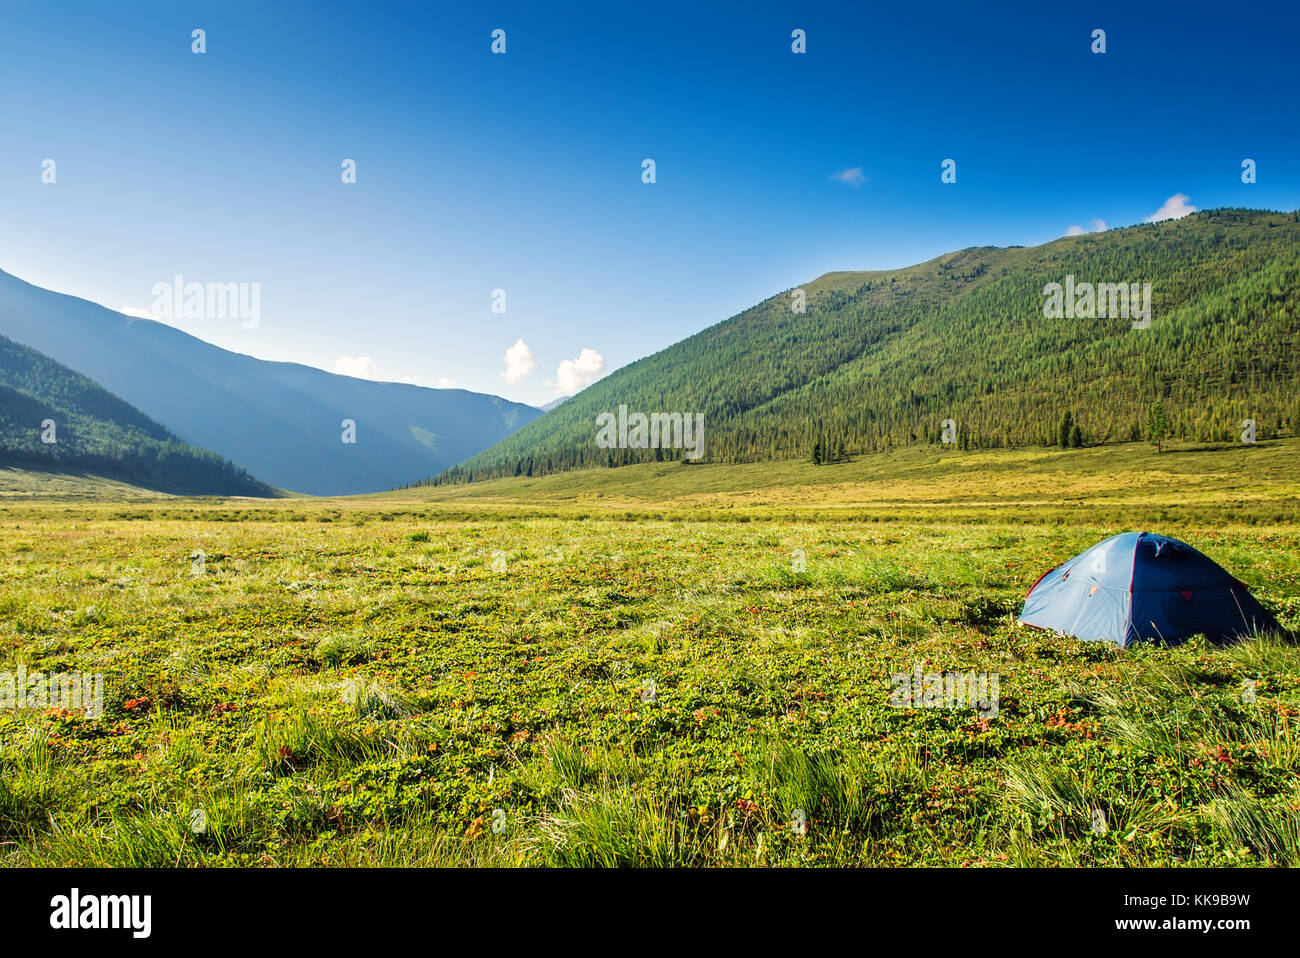 Picturesque landscape tourist tent on mountain meadow field dawn sunrise backpacking against background of high mountain wild nature ecological to & Picturesque landscape tourist tent on mountain meadow field dawn ...